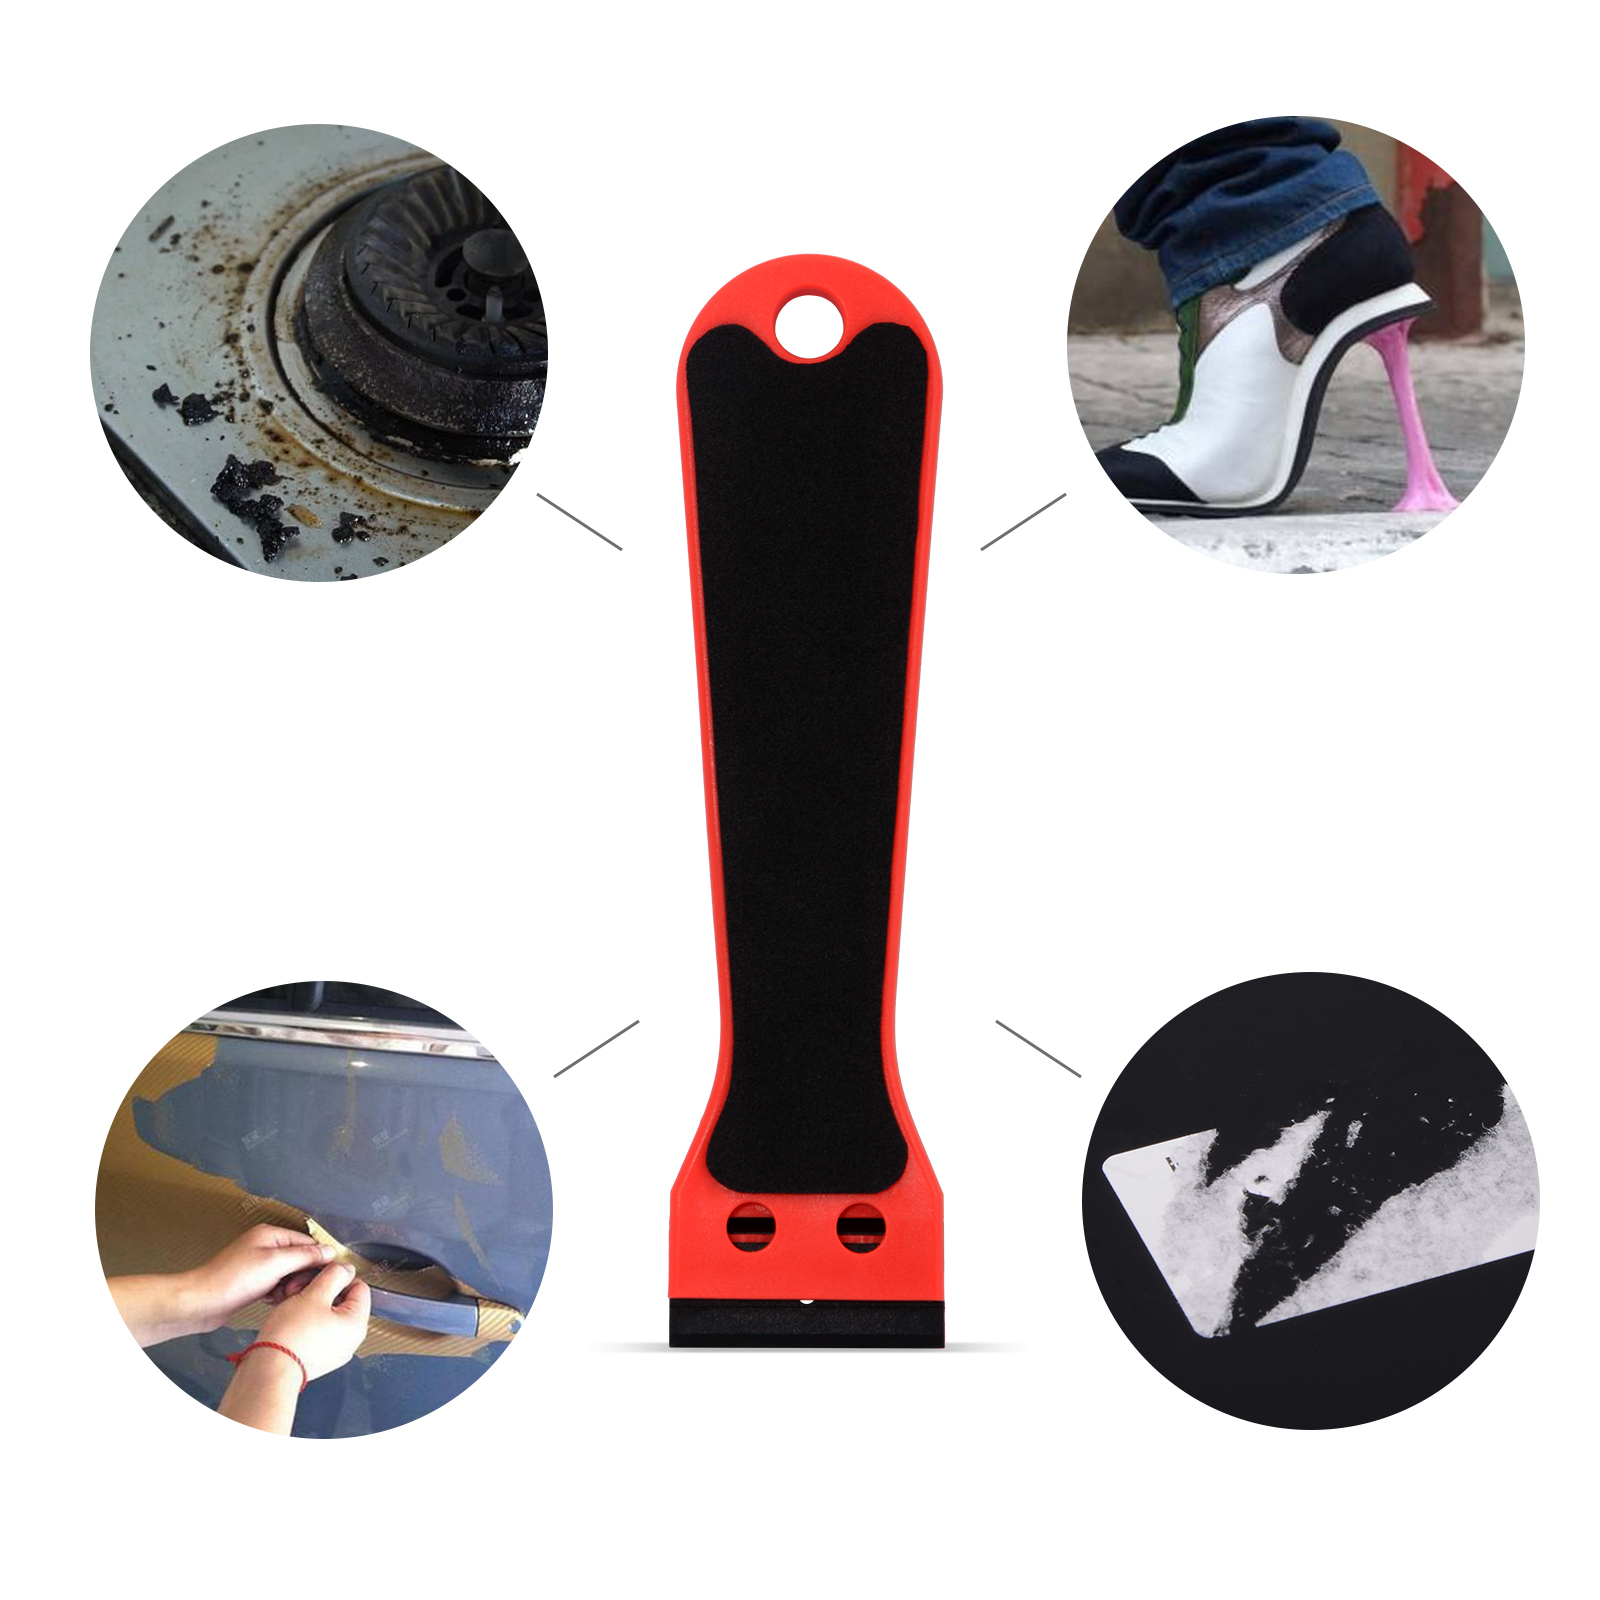 EHDIS Vinyl Car Film Razor Scraper 15cm Wrap Sticker Plastic Non-slip Squeegee Decal Ice Remove Clean Tool Auto Tint Accessories title=